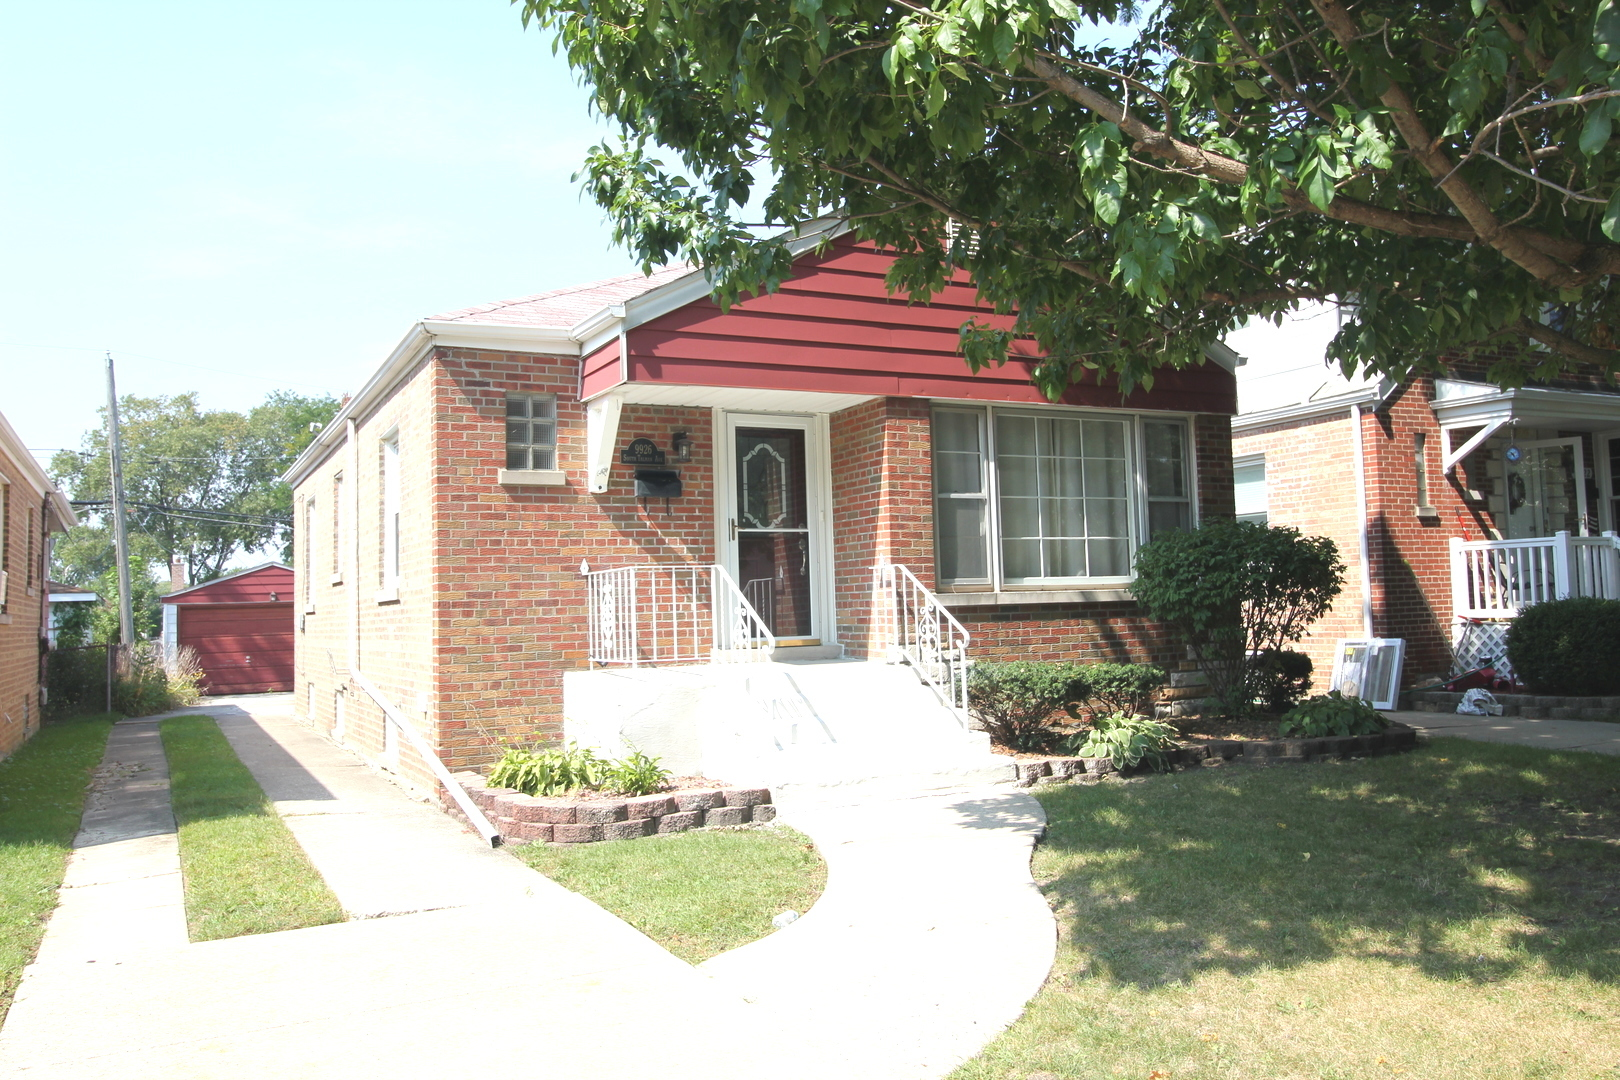 9926 South Talman Avenue, Beverly-Chicago in Cook County, IL 60655 Home for Sale